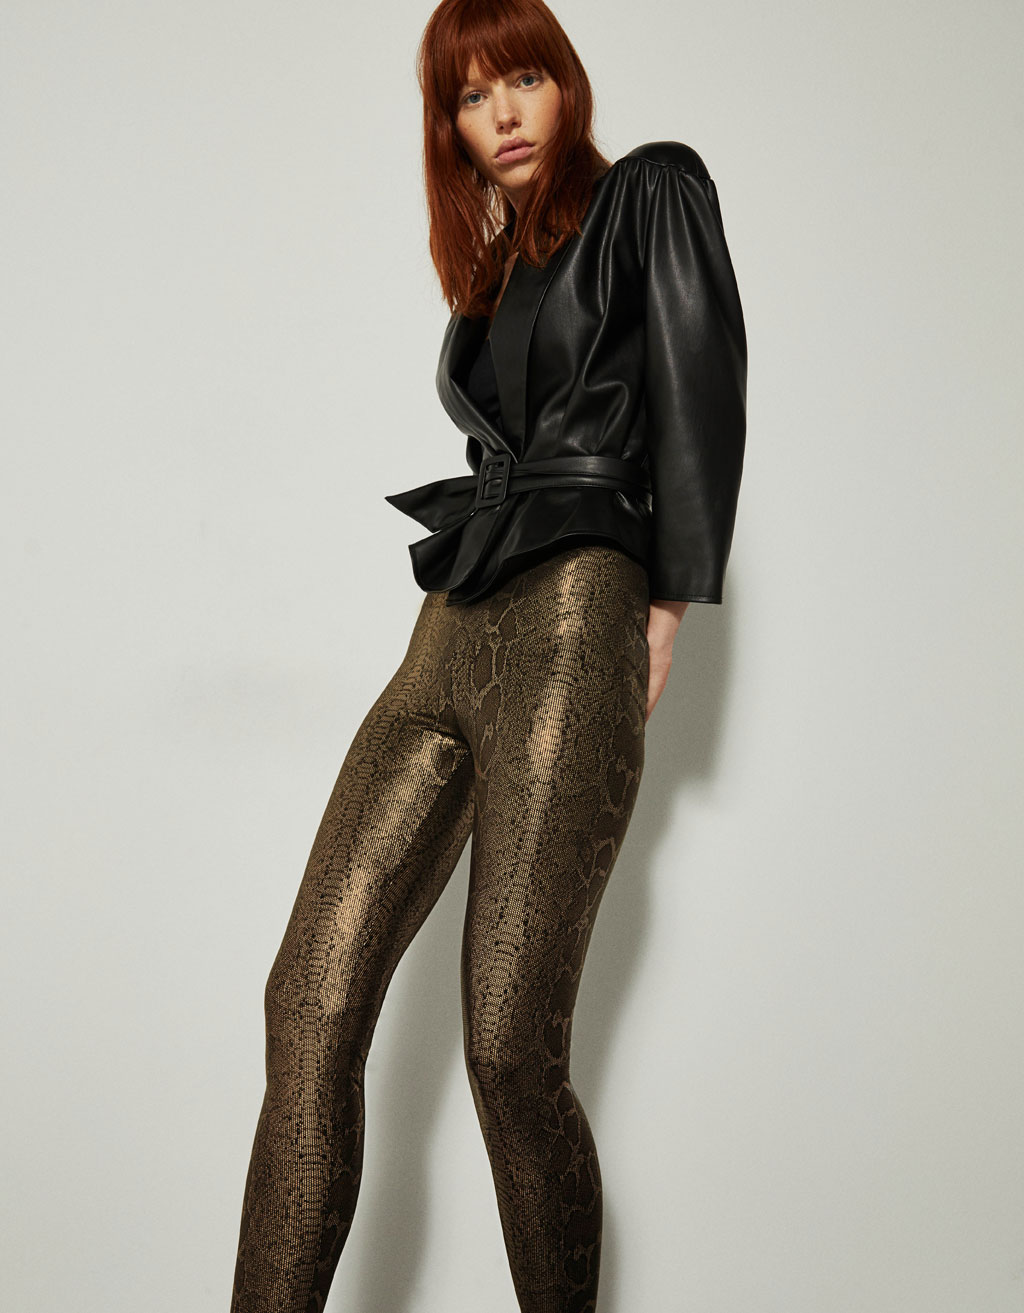 Metallic snakeskin print leggings